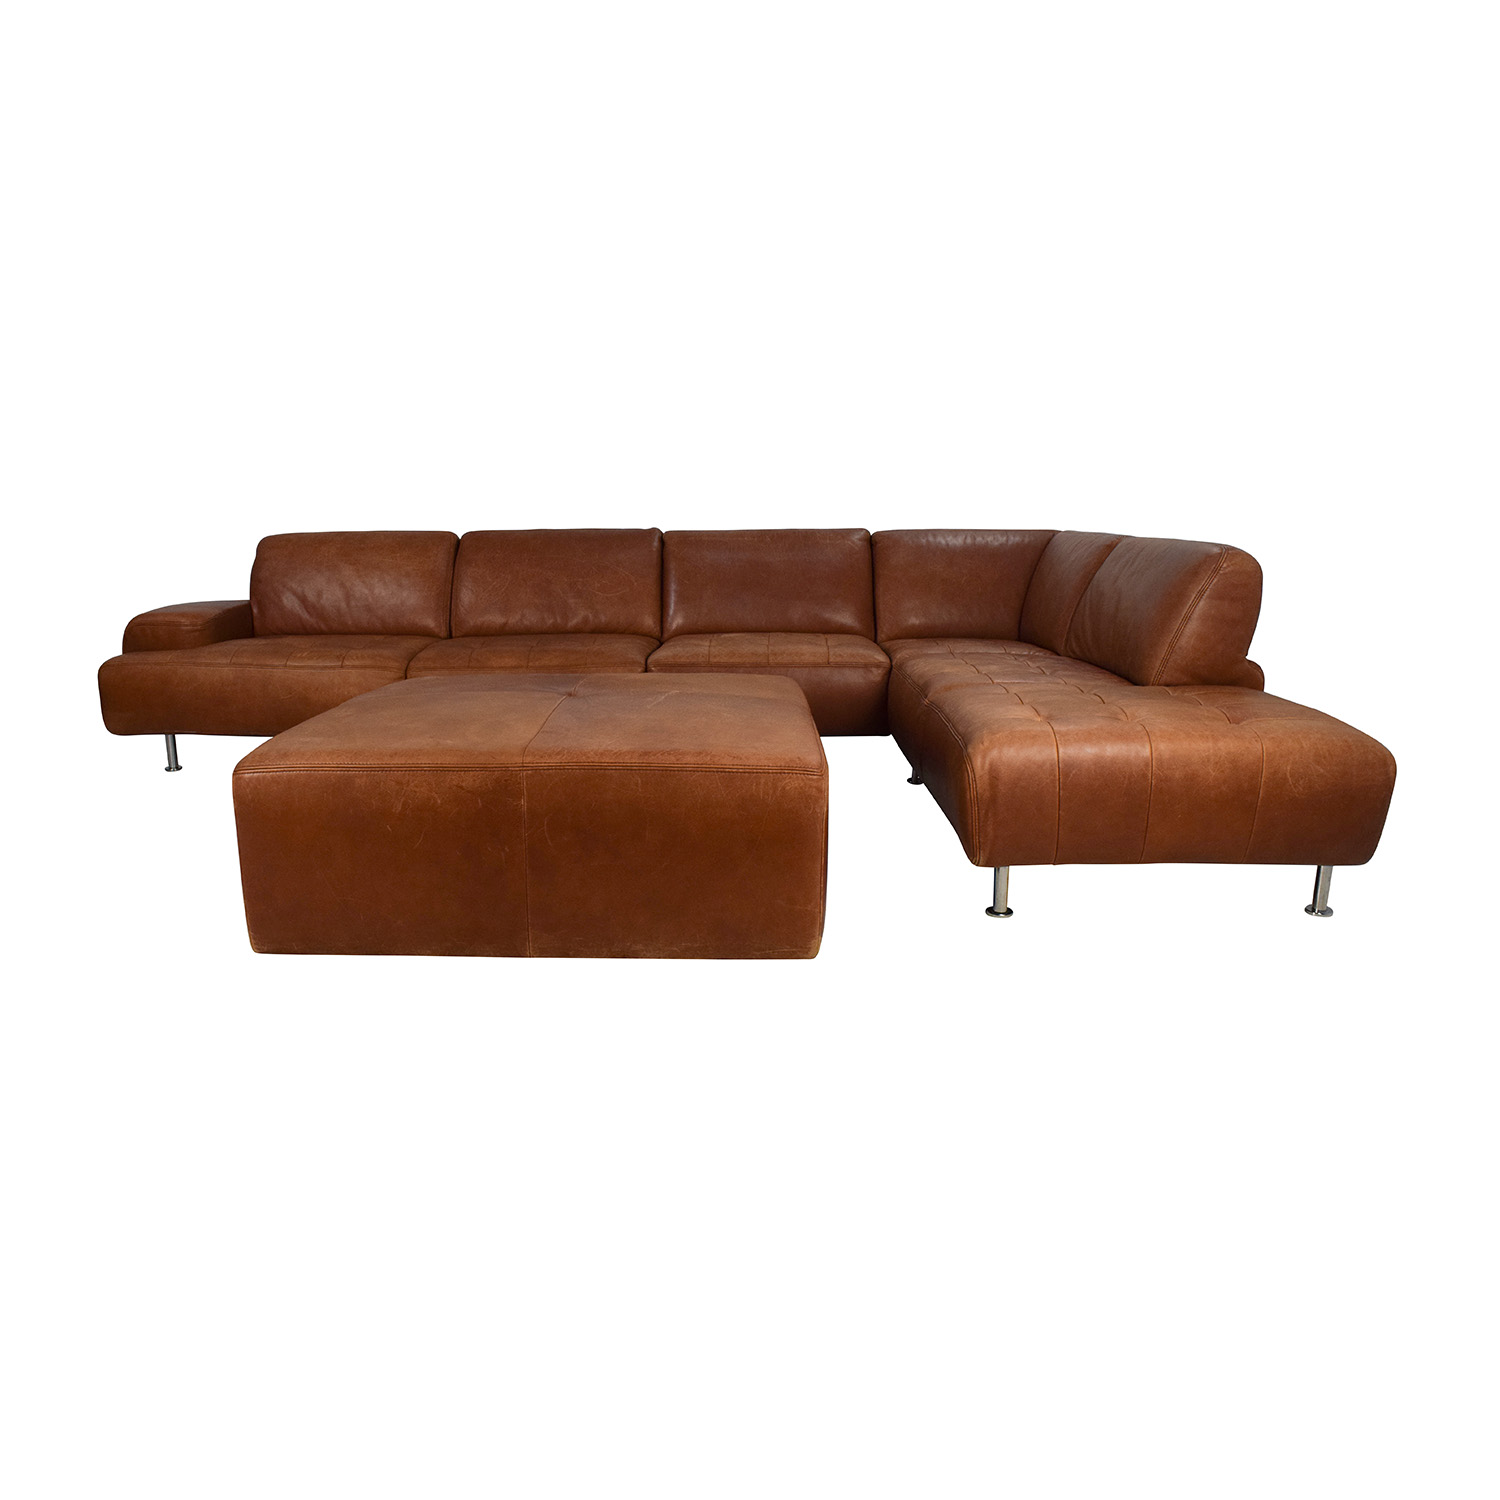 W.Schillig W. Schillig Leather Sectional and Ottoman discount